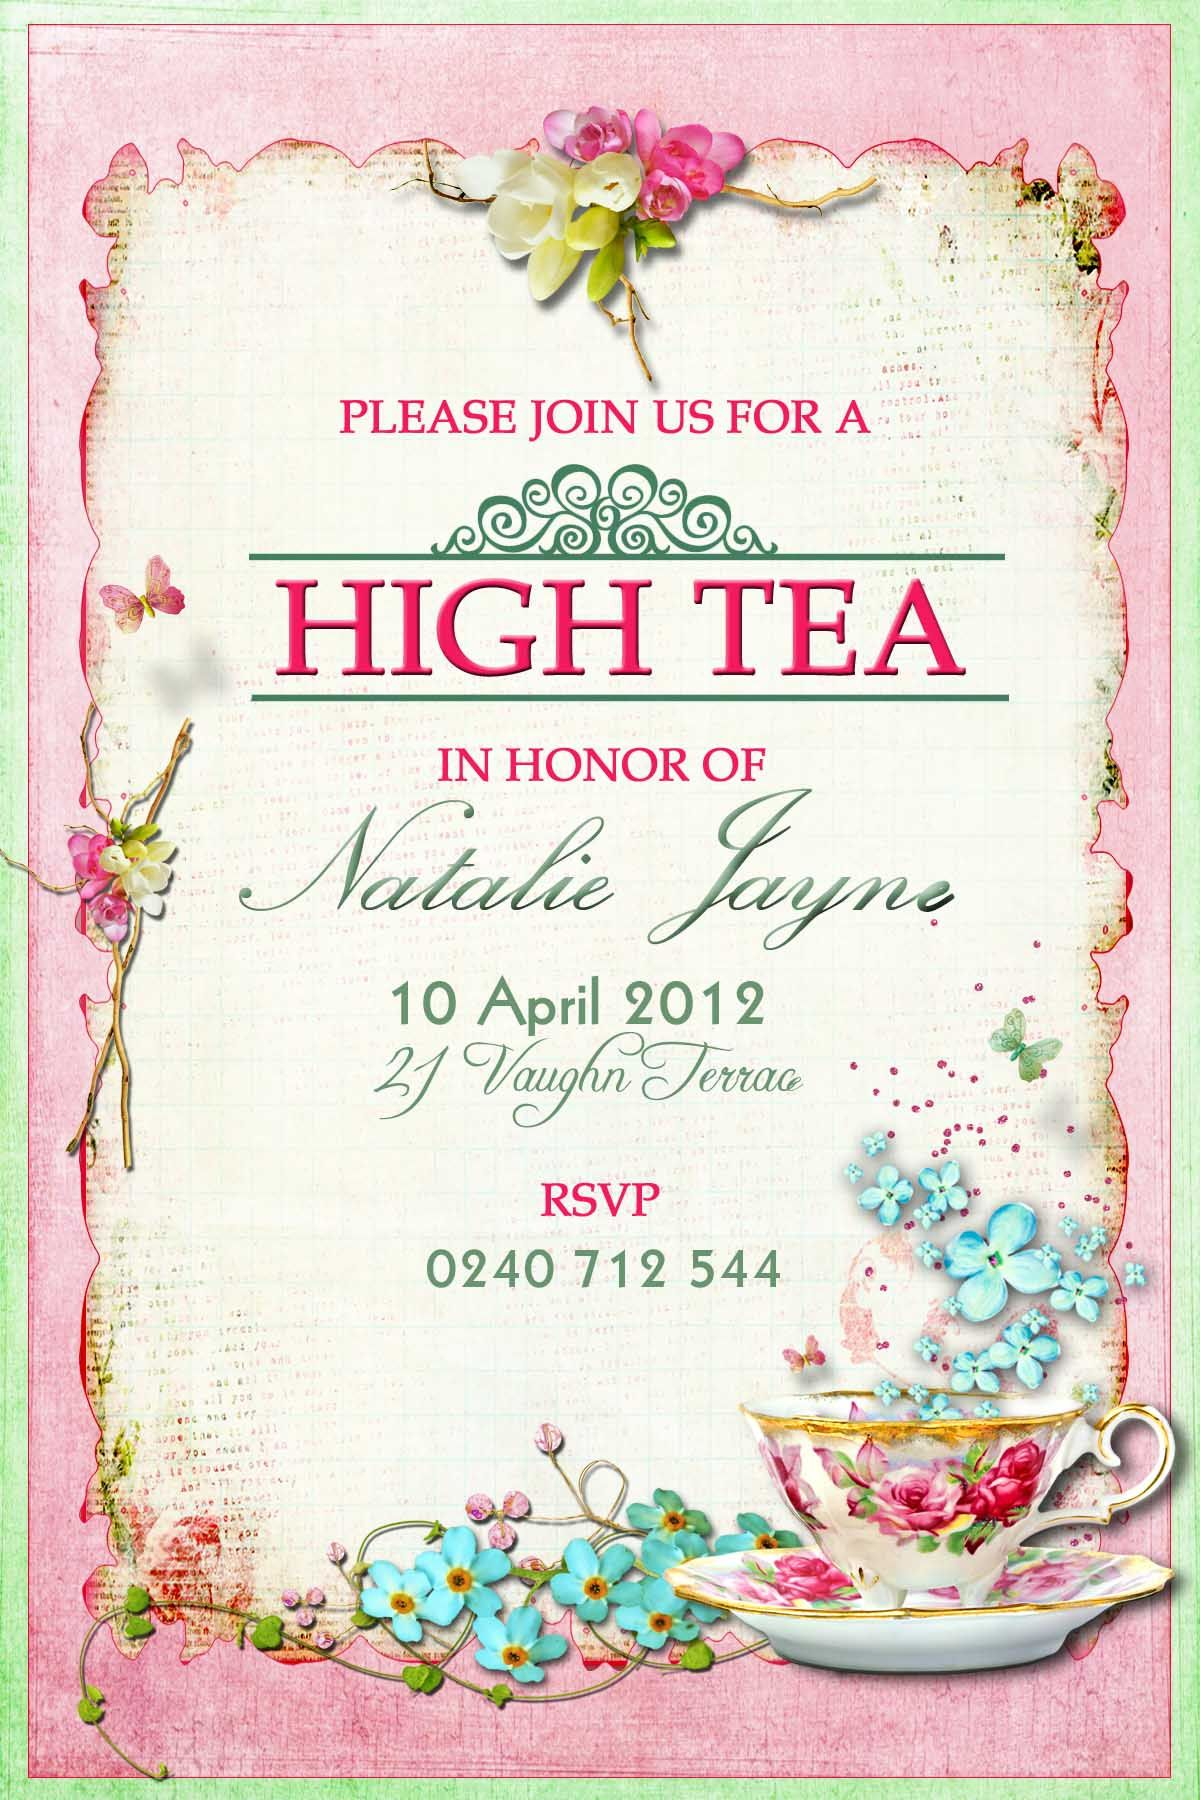 Victorian high tea party invitationssurprise party invitation victorian high tea party invitationssurprise party invitation stopboris Choice Image